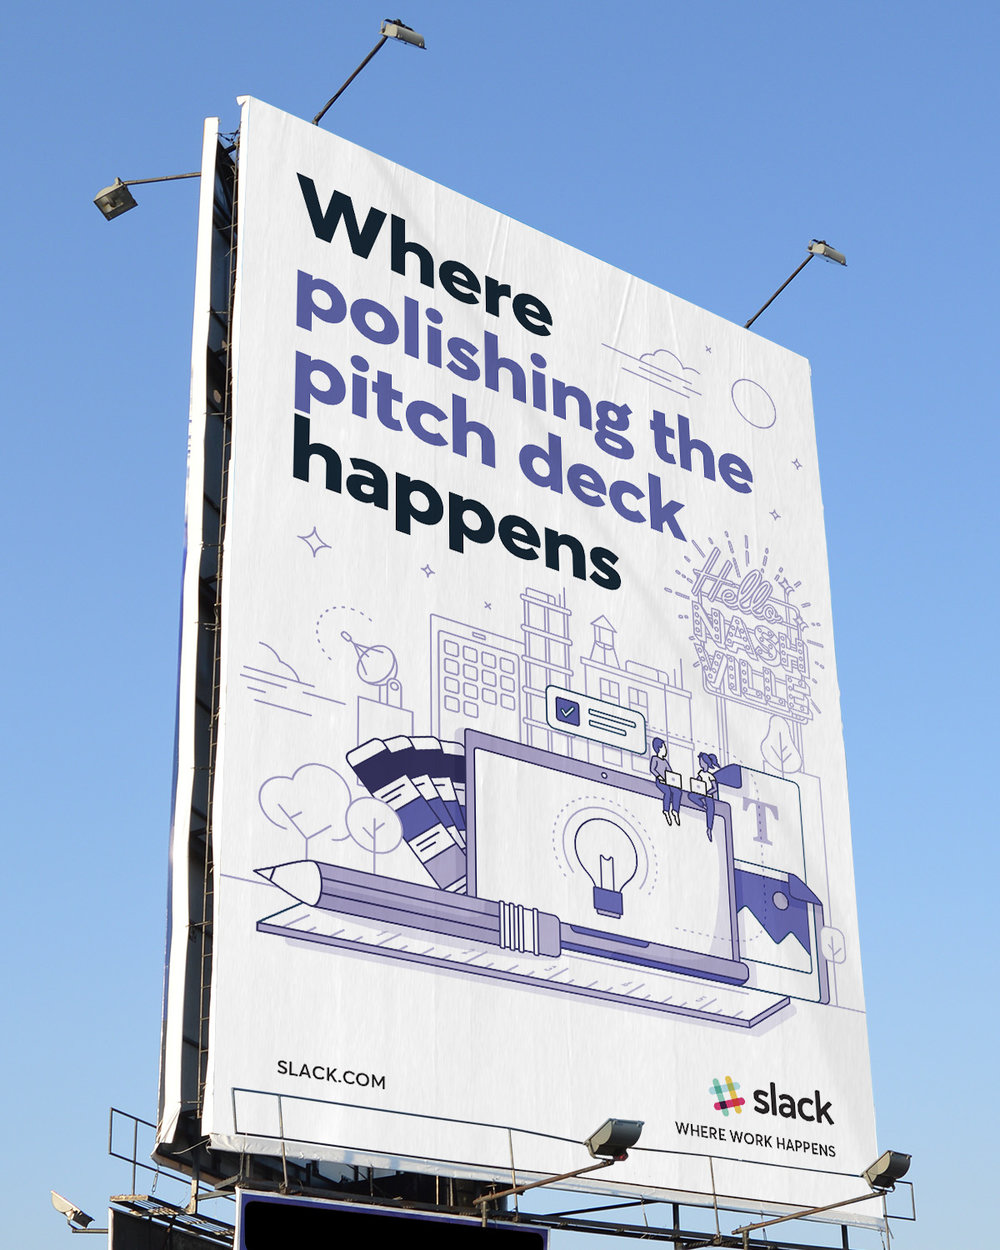 A nashville billboard for Slack featuring artwork specific to the city as well as specific to the creative industry with the message where polishing the pitch deck happens.